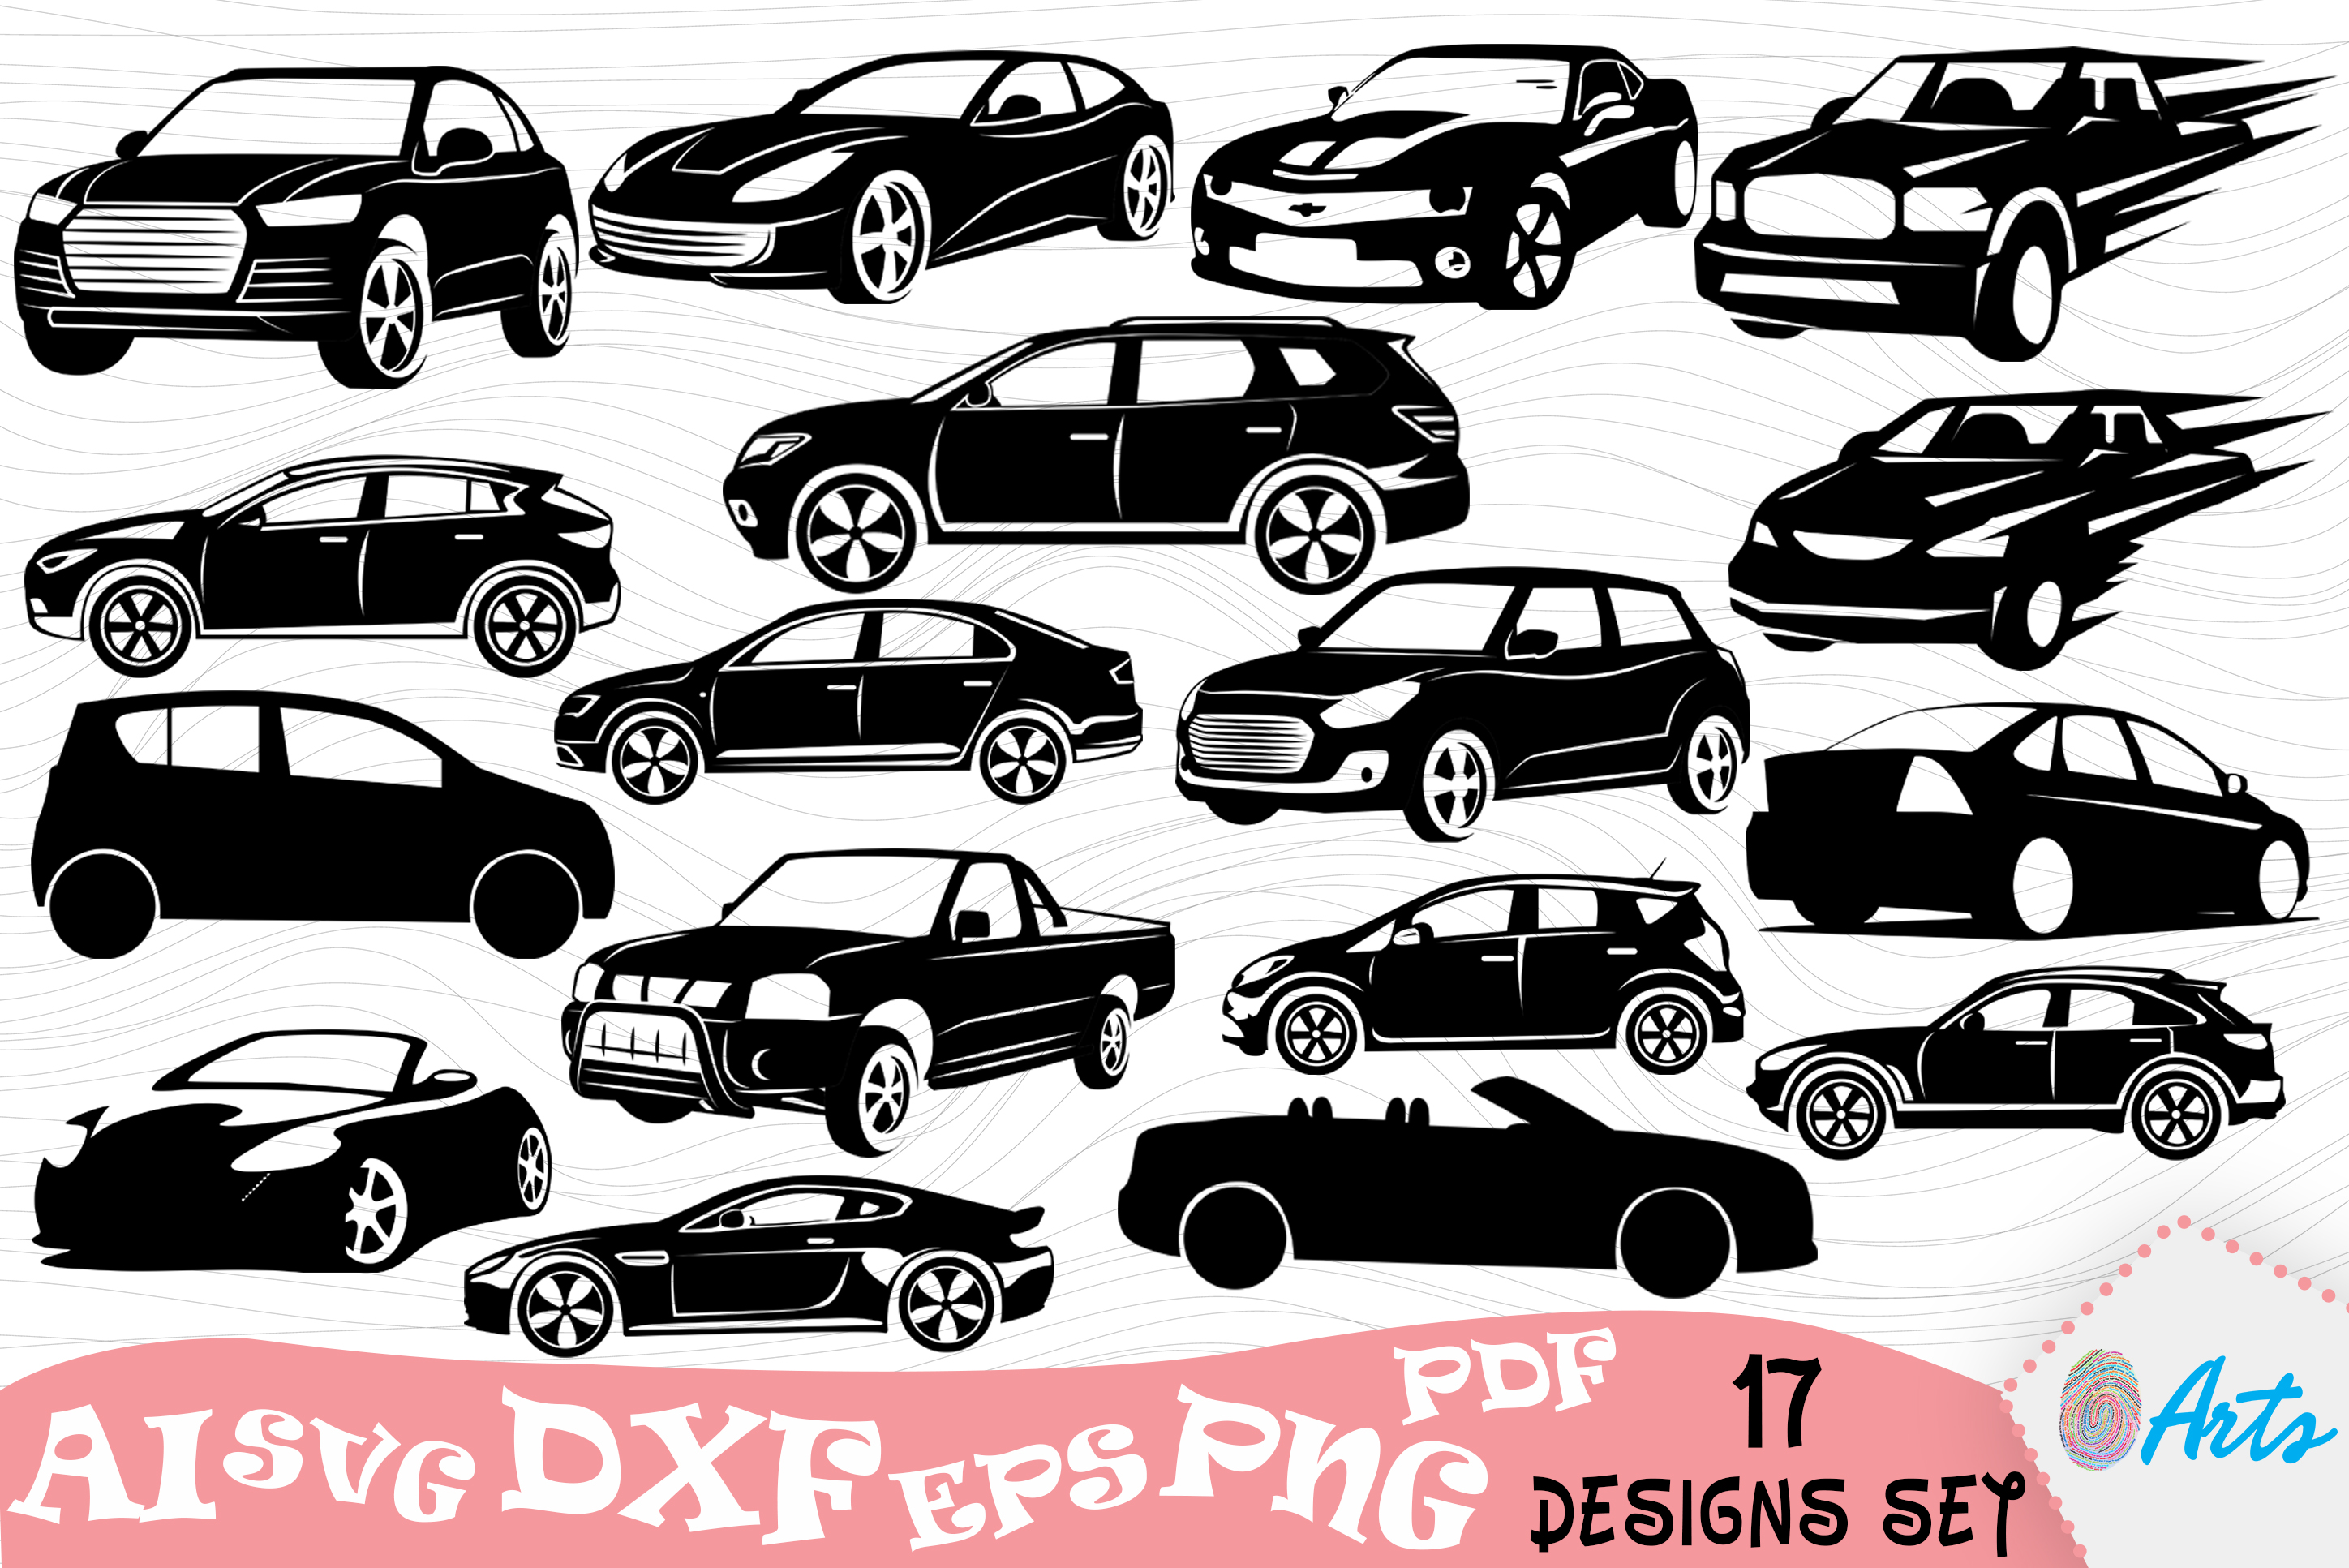 Download Free High Speed Cars Silhouette Vector Design Graphic By Digitemb for Cricut Explore, Silhouette and other cutting machines.